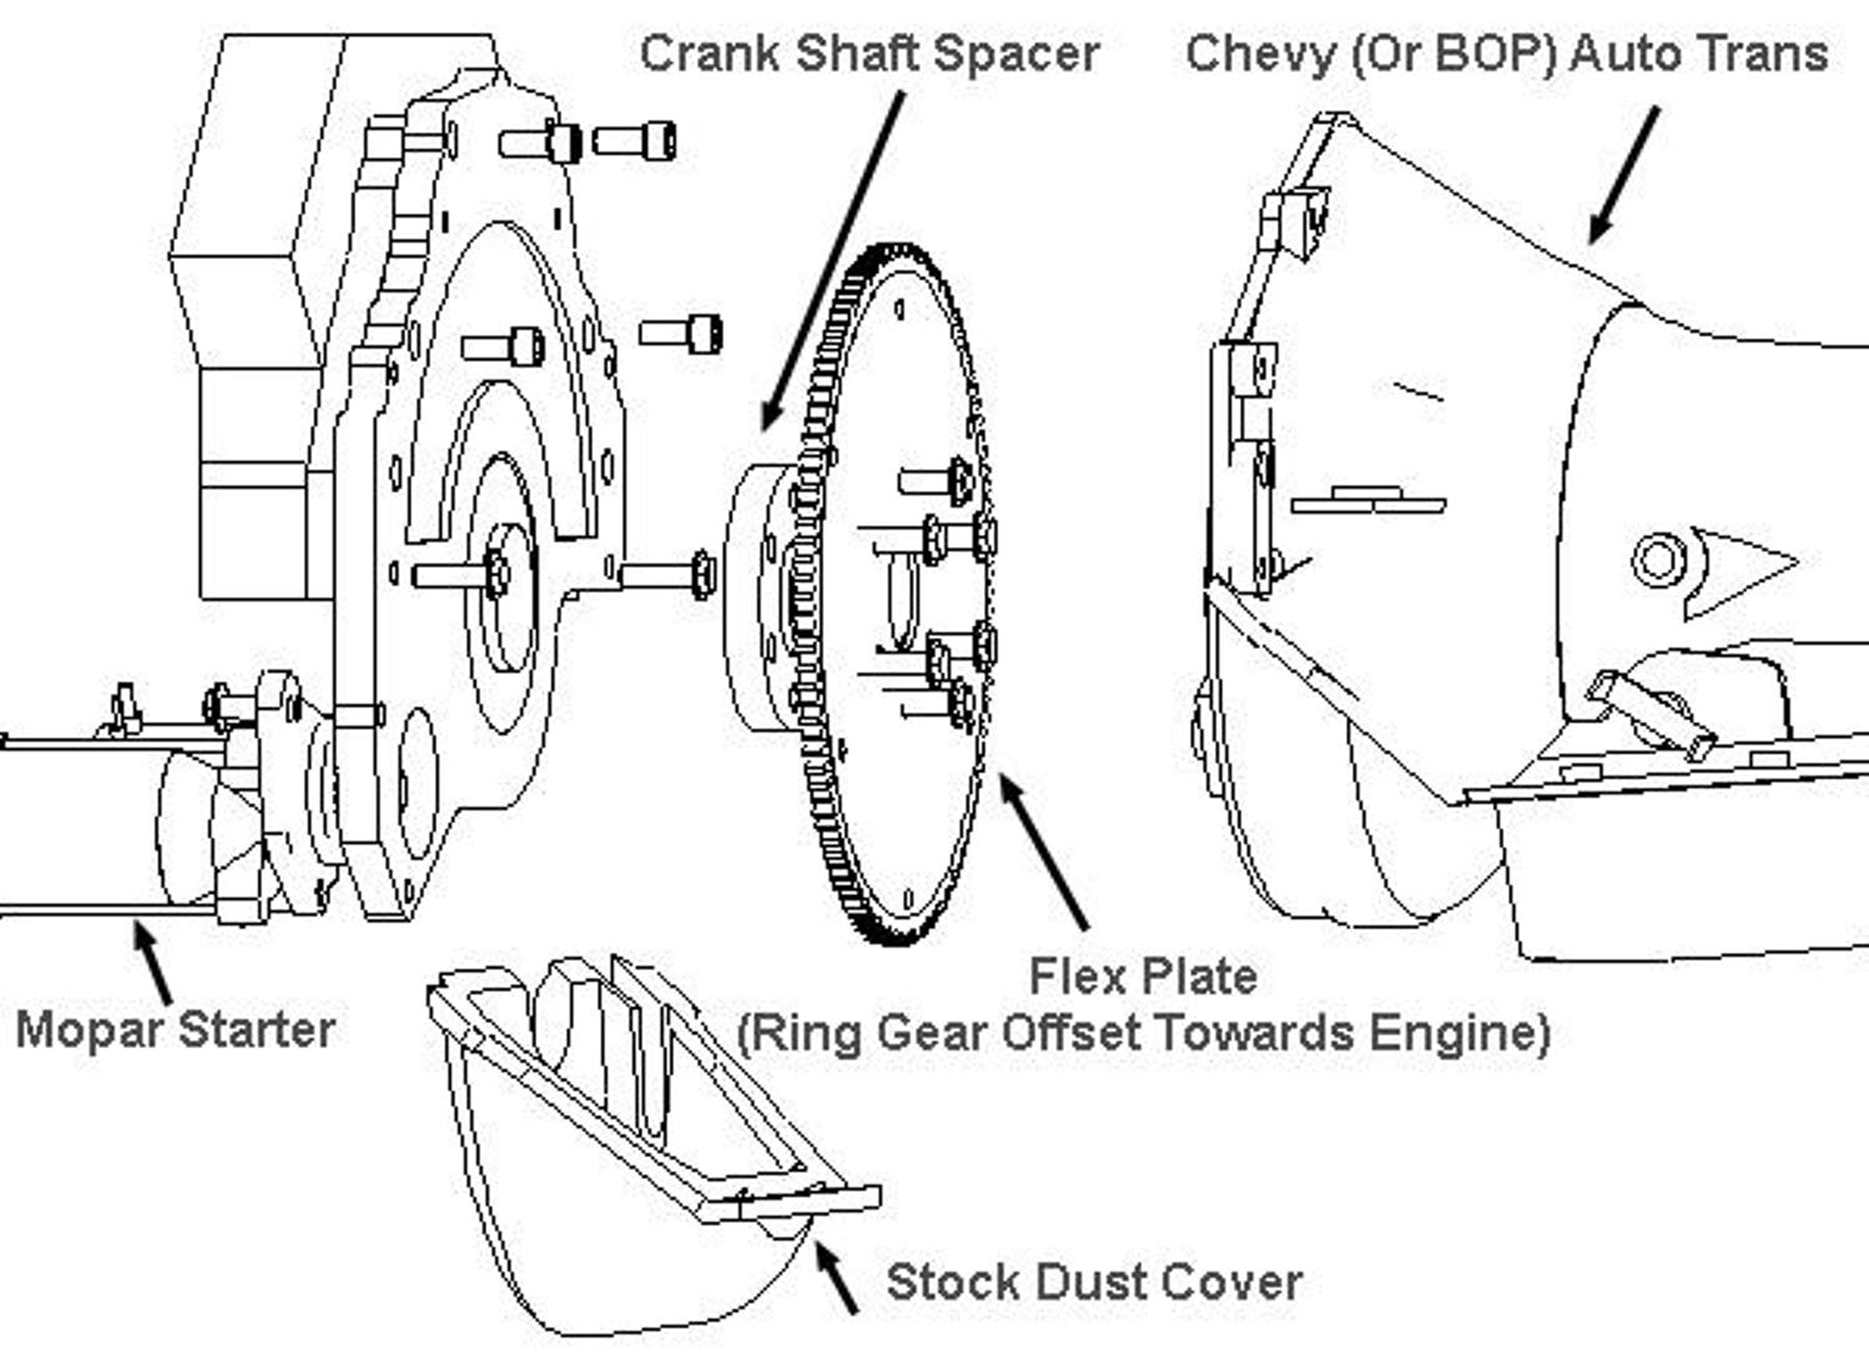 700r4 torque converter lock up wiring wiring diagram and th350c transmission wiring 700r4 plug wiring diagram [ 1869 x 1360 Pixel ]